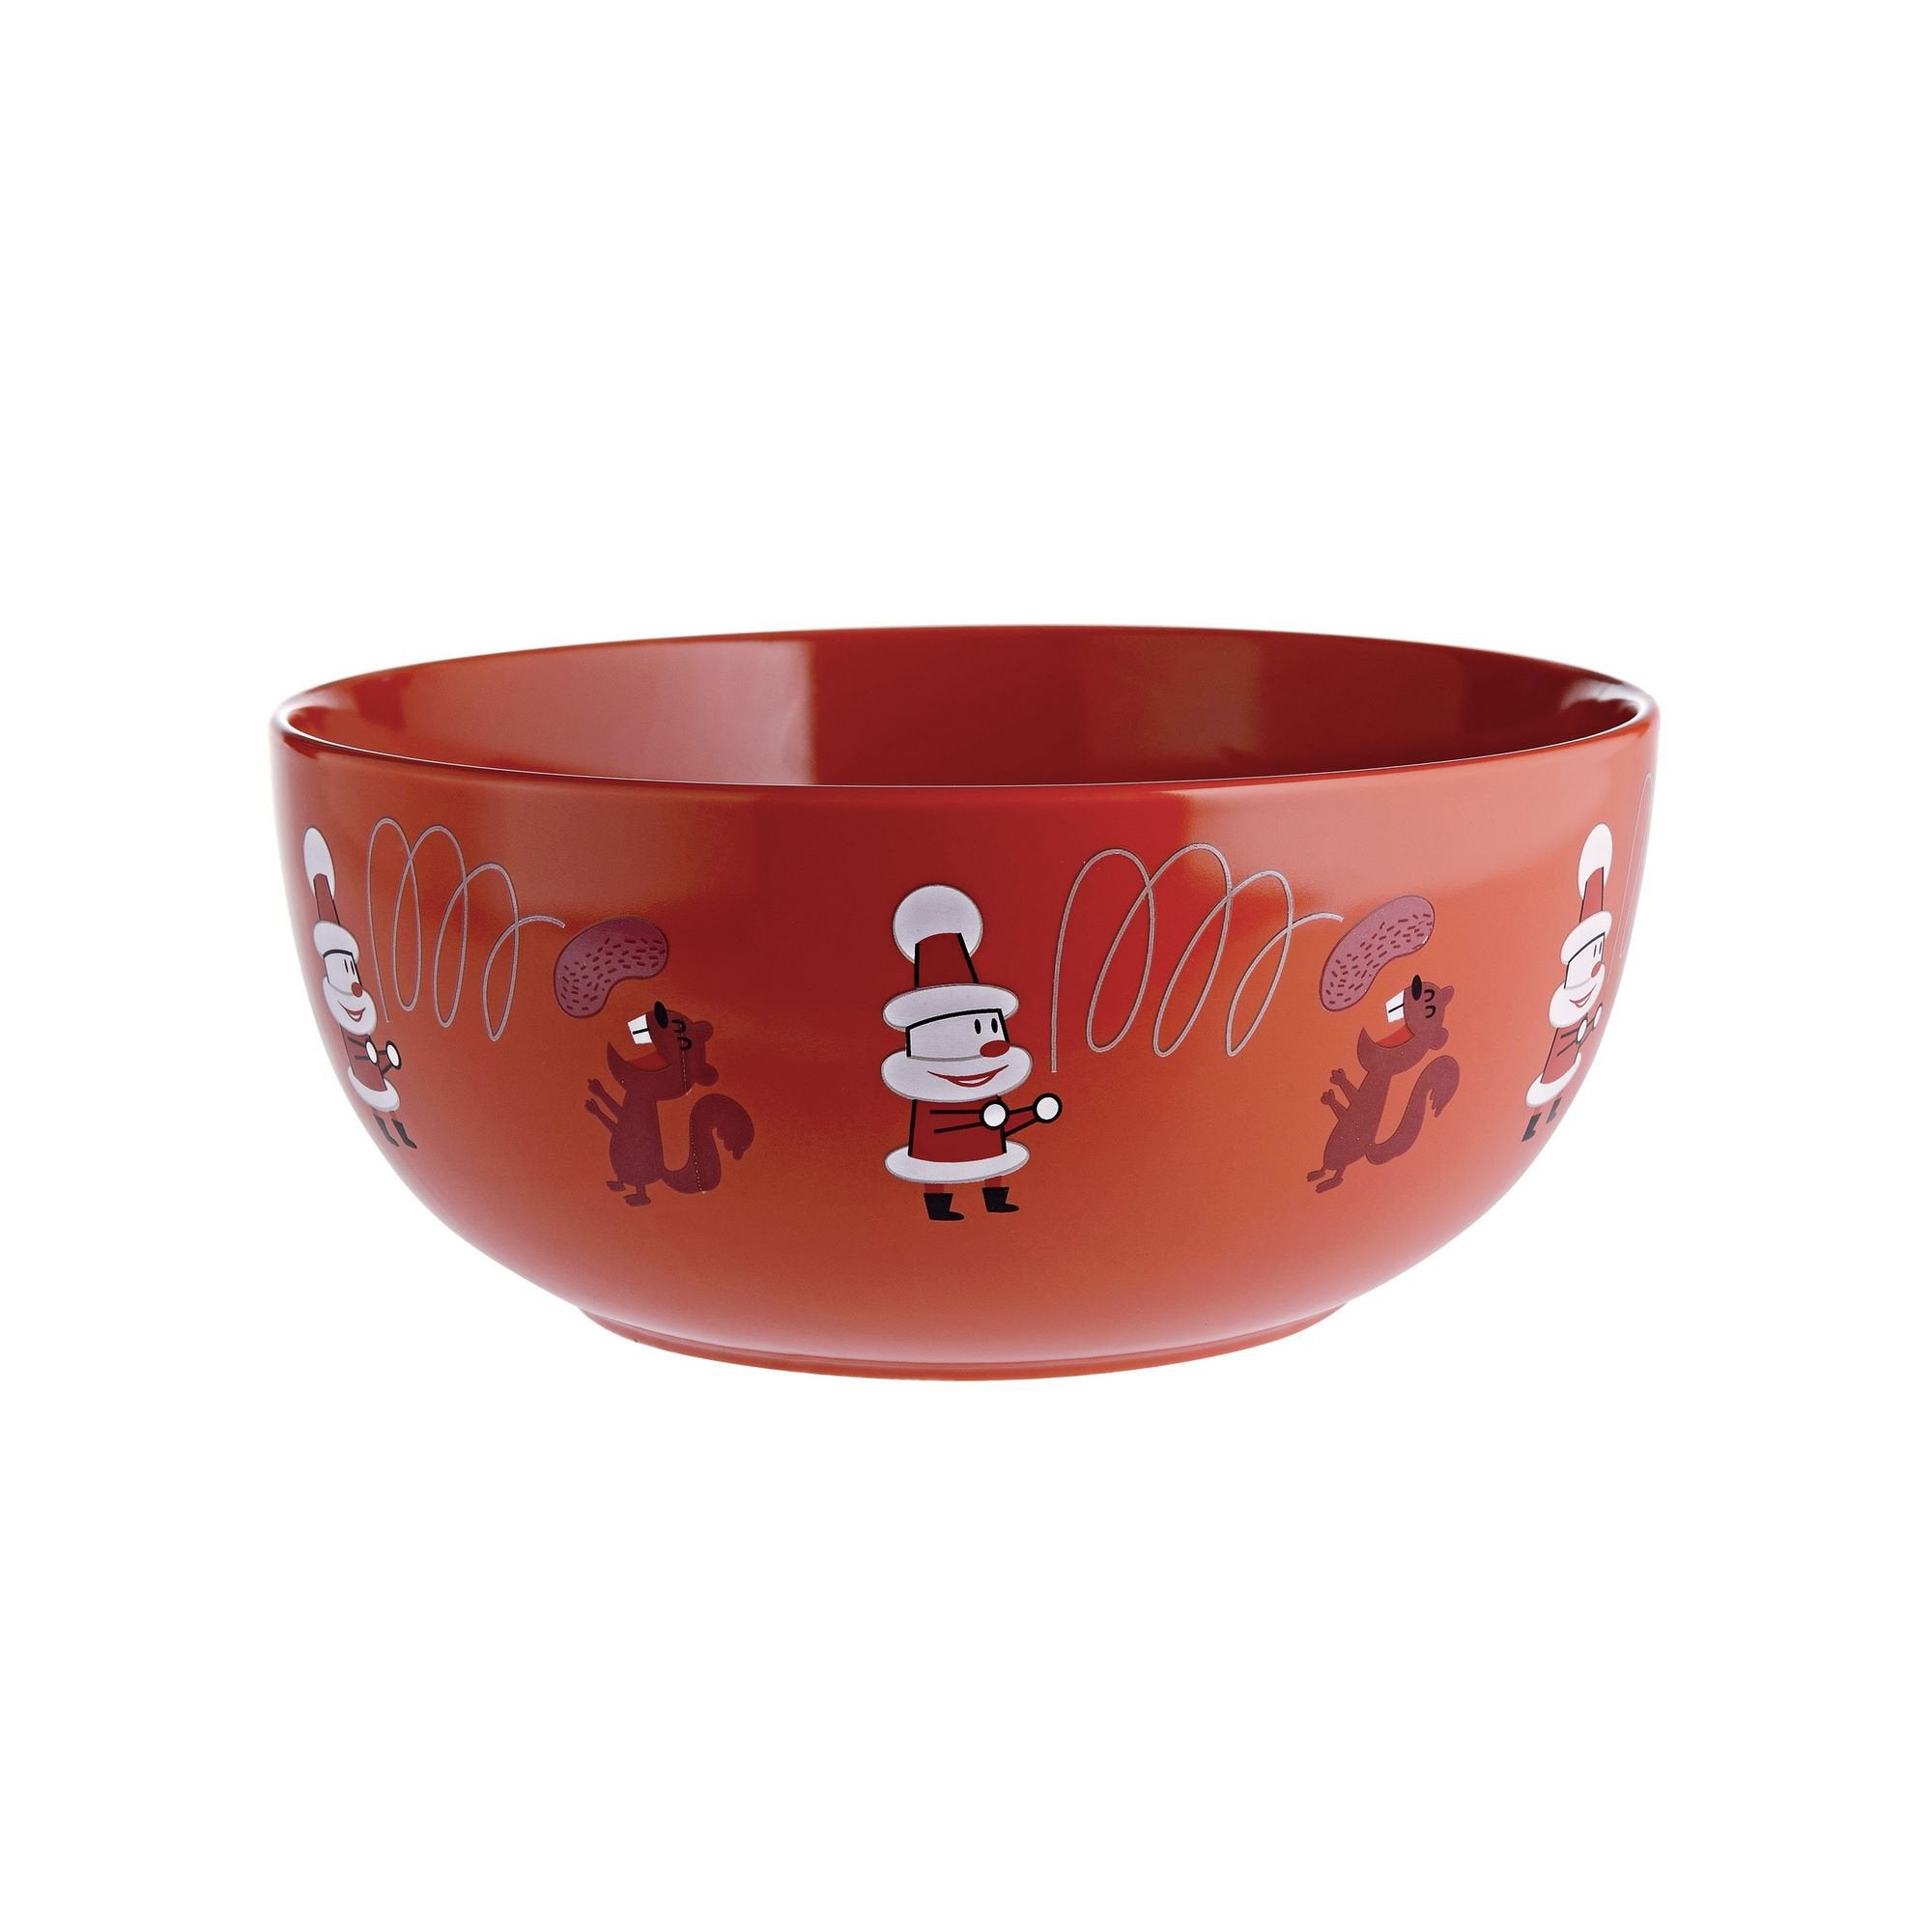 Nut bowl - Get nuts! Christmas